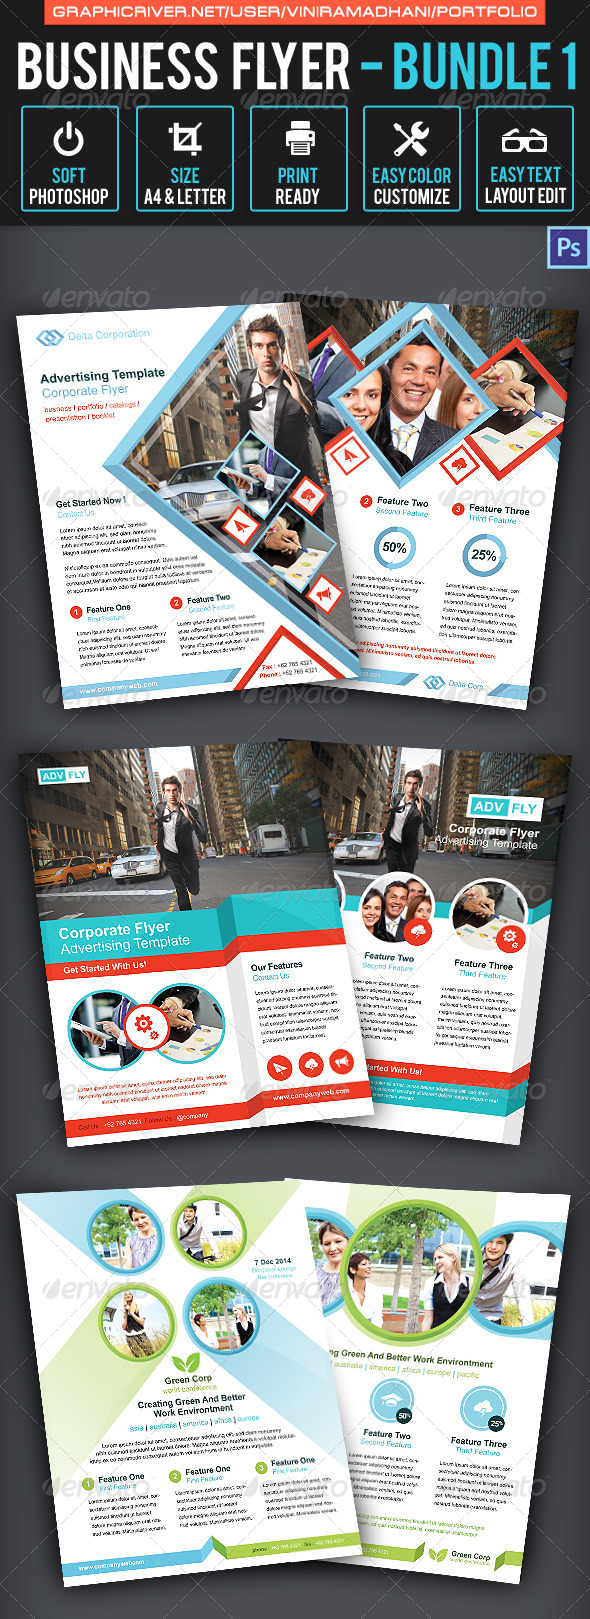 GraphicRiver Business Flyer Bundle 1 7025238